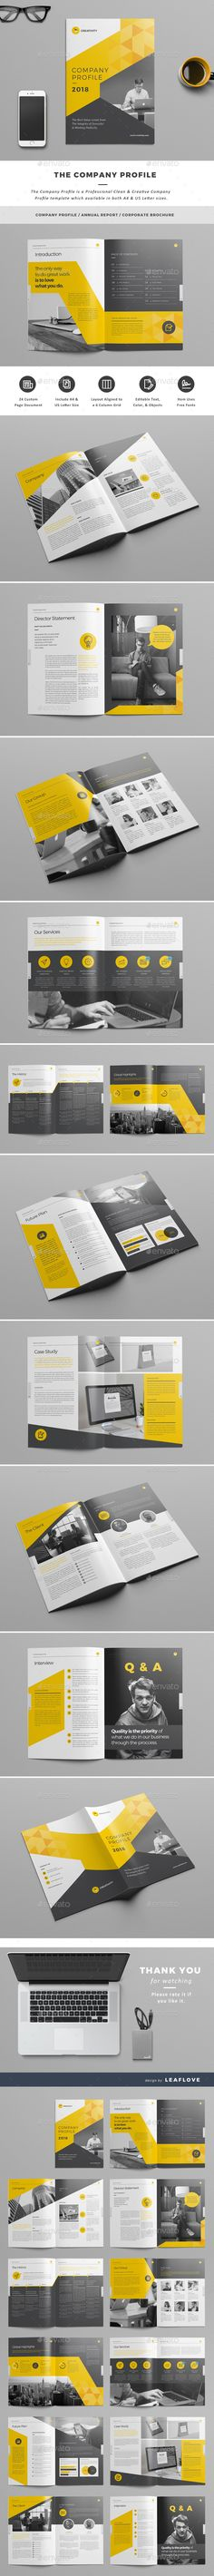 The Company Profile. Print-templates Brochures Corporate. Tagged as agency, annual report, book, brand, brochure, business, clean, company profile, corporate, creative, design, digital, identity, indesign, infographics, informational, letter, marketing, modern, portfolio, professional, project, proposal, report, review, swiss, template, and yellow.